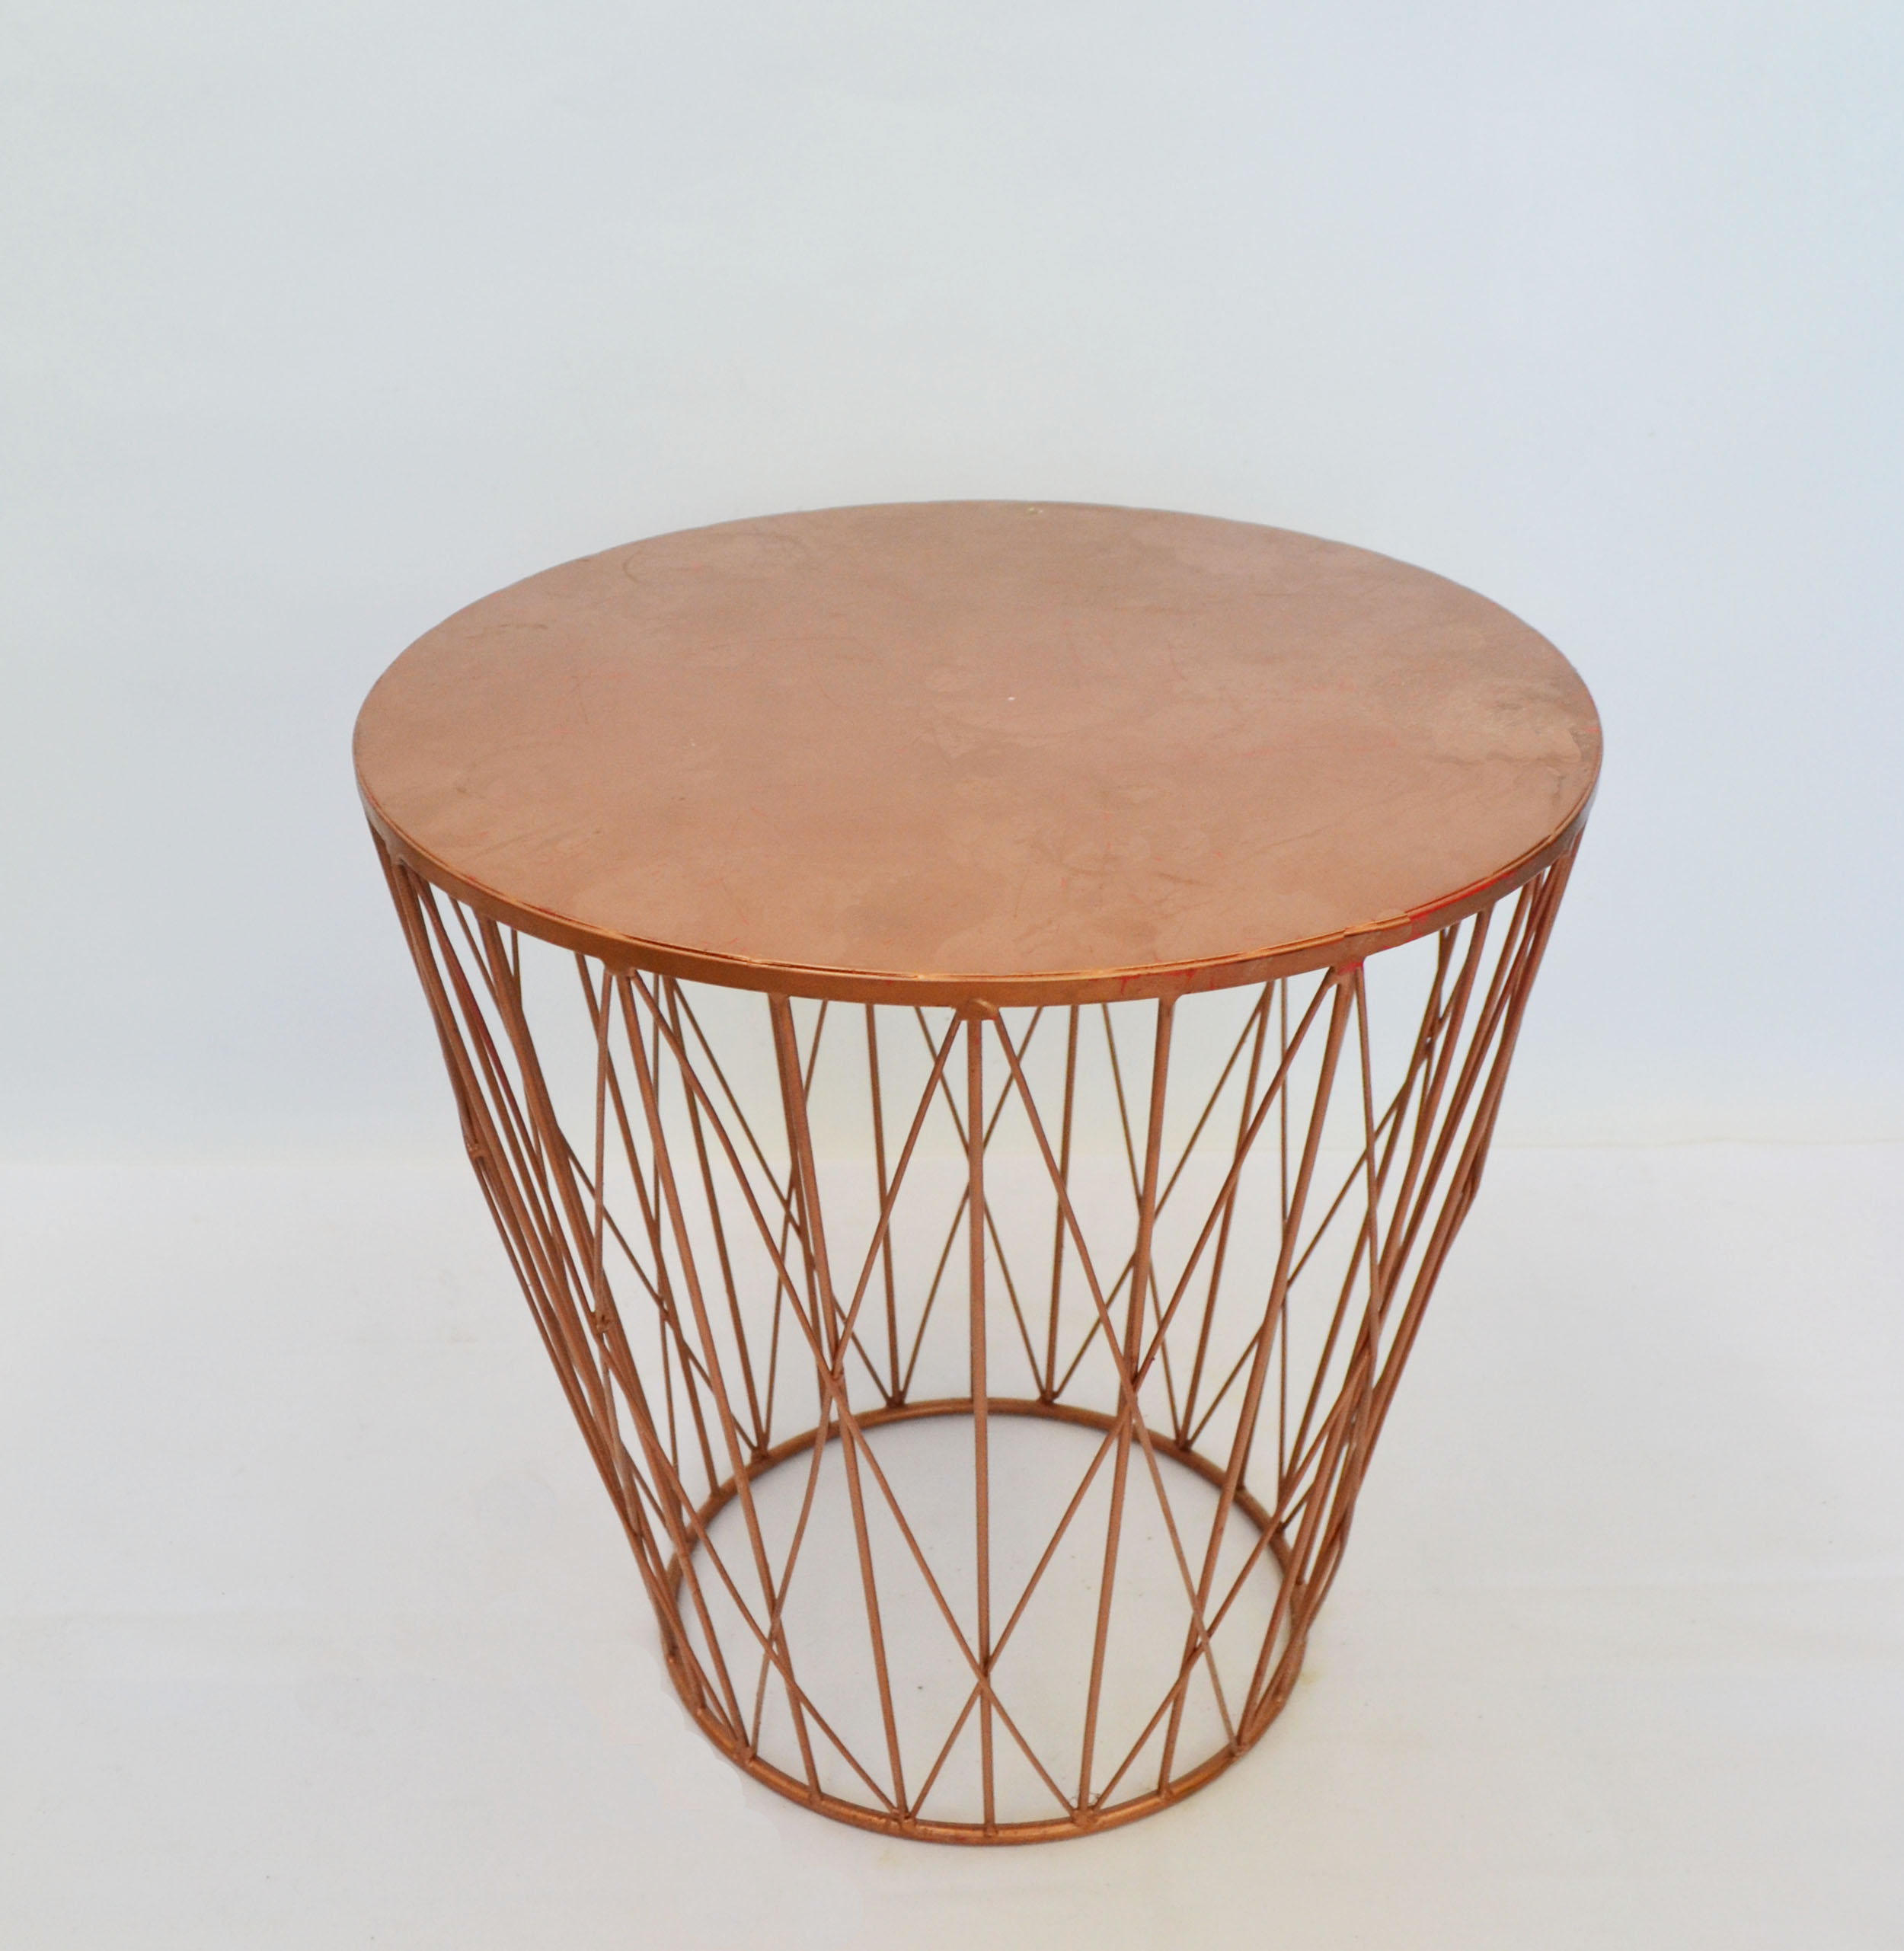 copper side table   Quantity: 1  Price: $35.00